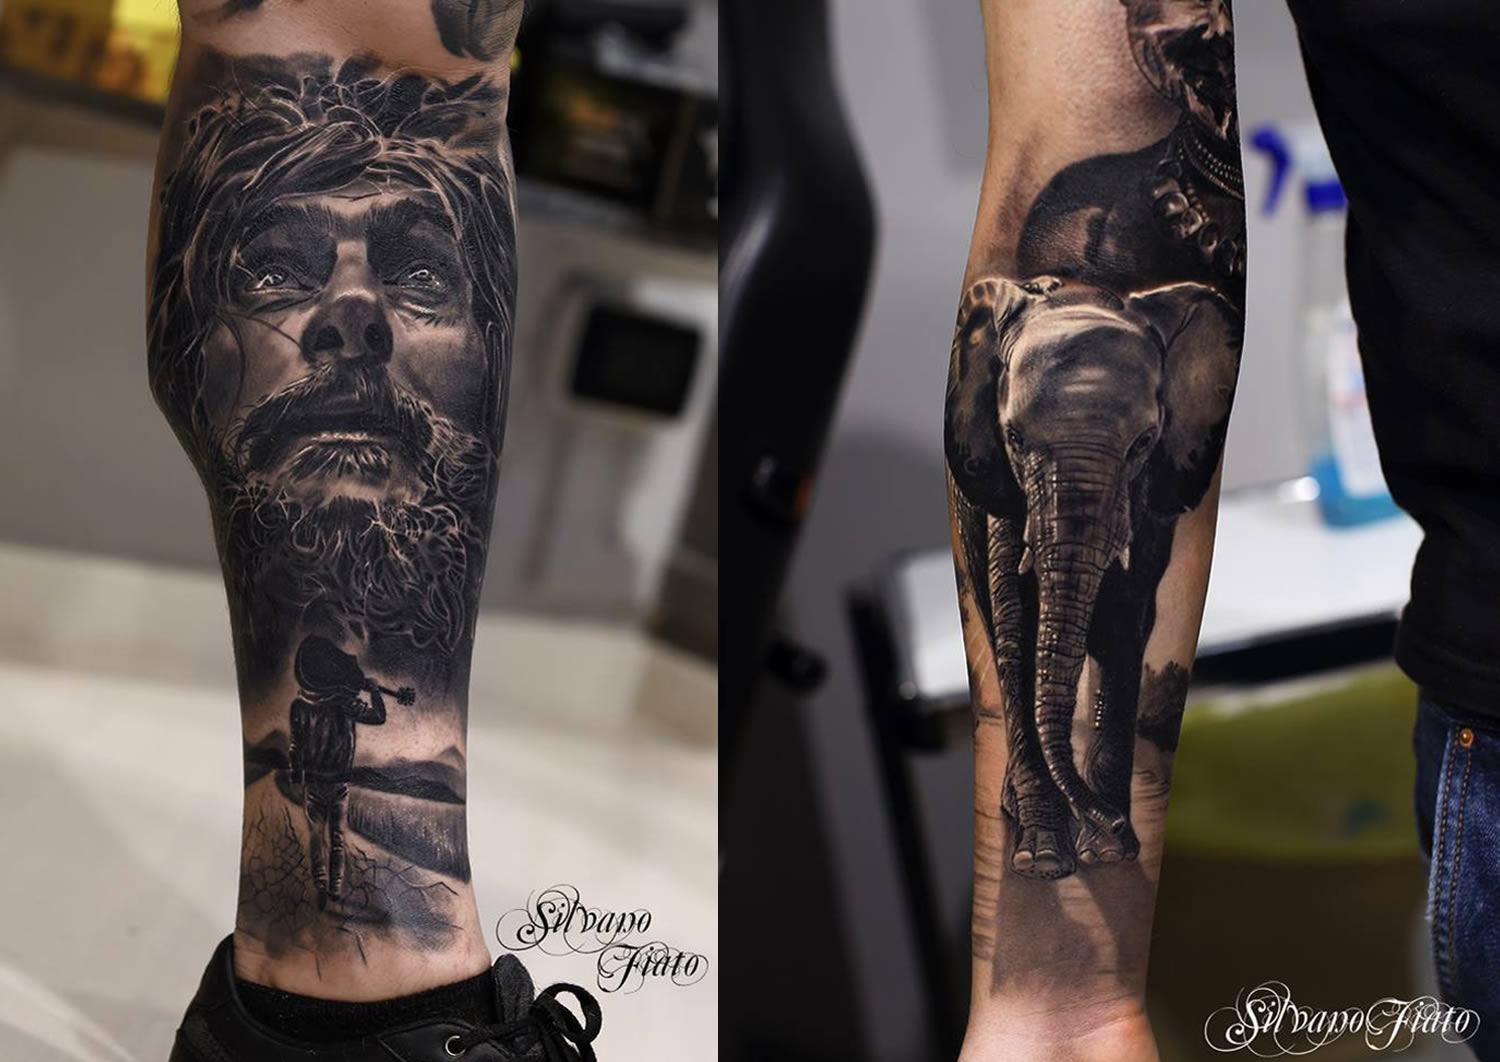 jesus christ and elephant tattoos, realism, hyerreal by silvano fiato